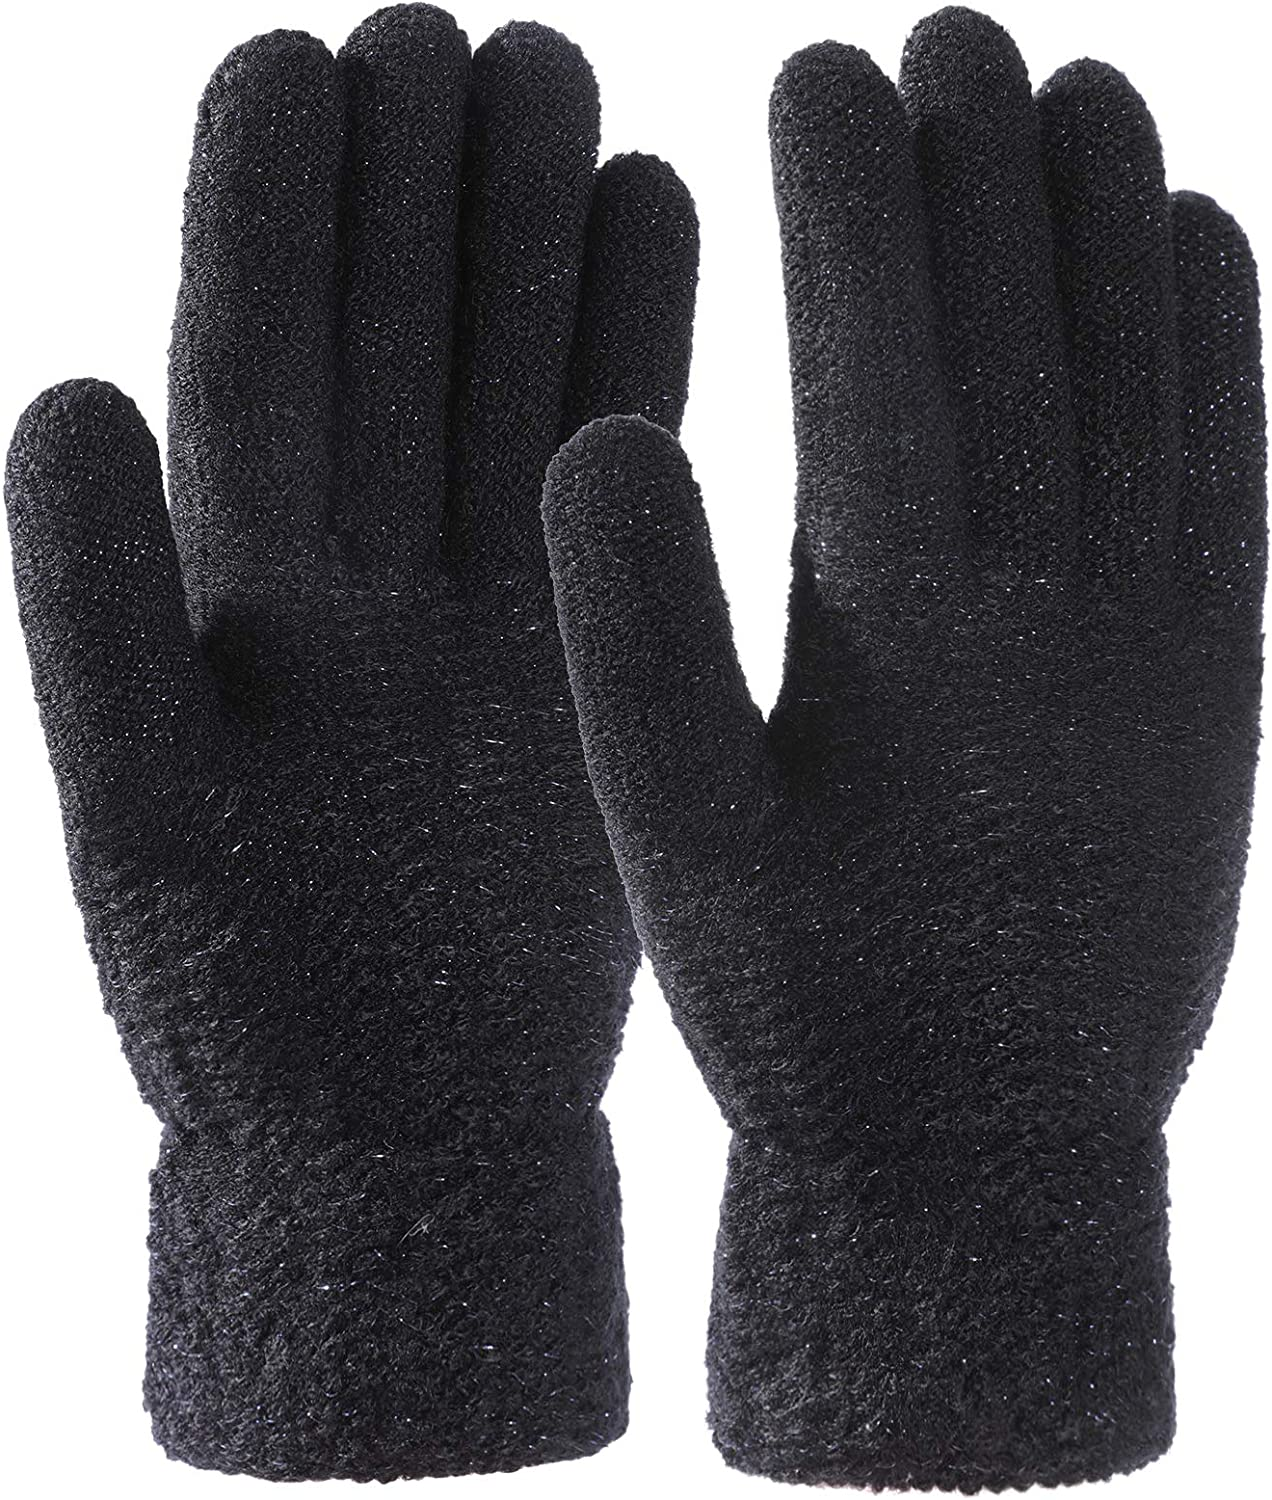 STARHOO Winter Thermal Gloves for Women Fleece Lined Knitted Gloves for Cold Weather